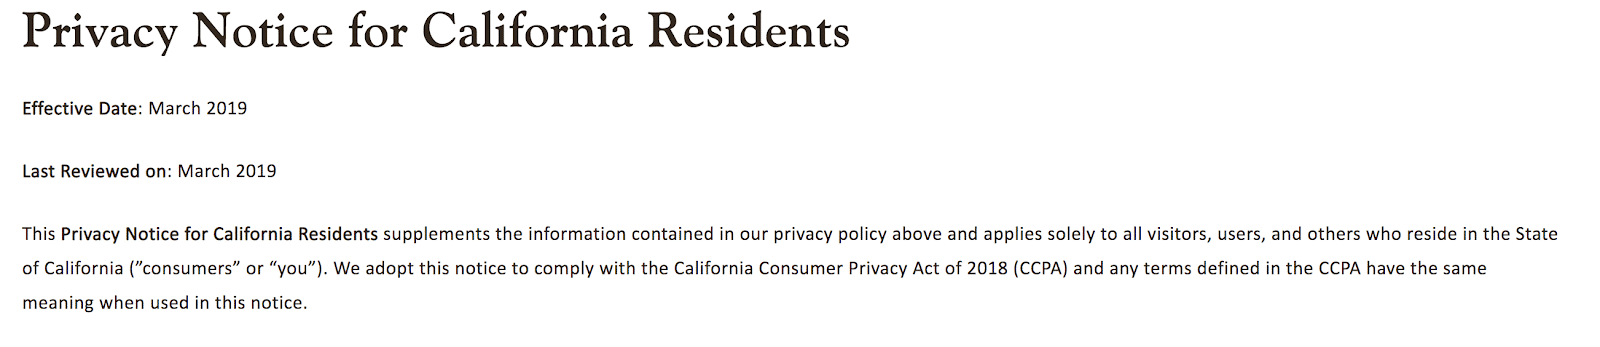 California-specific Privacy Notice